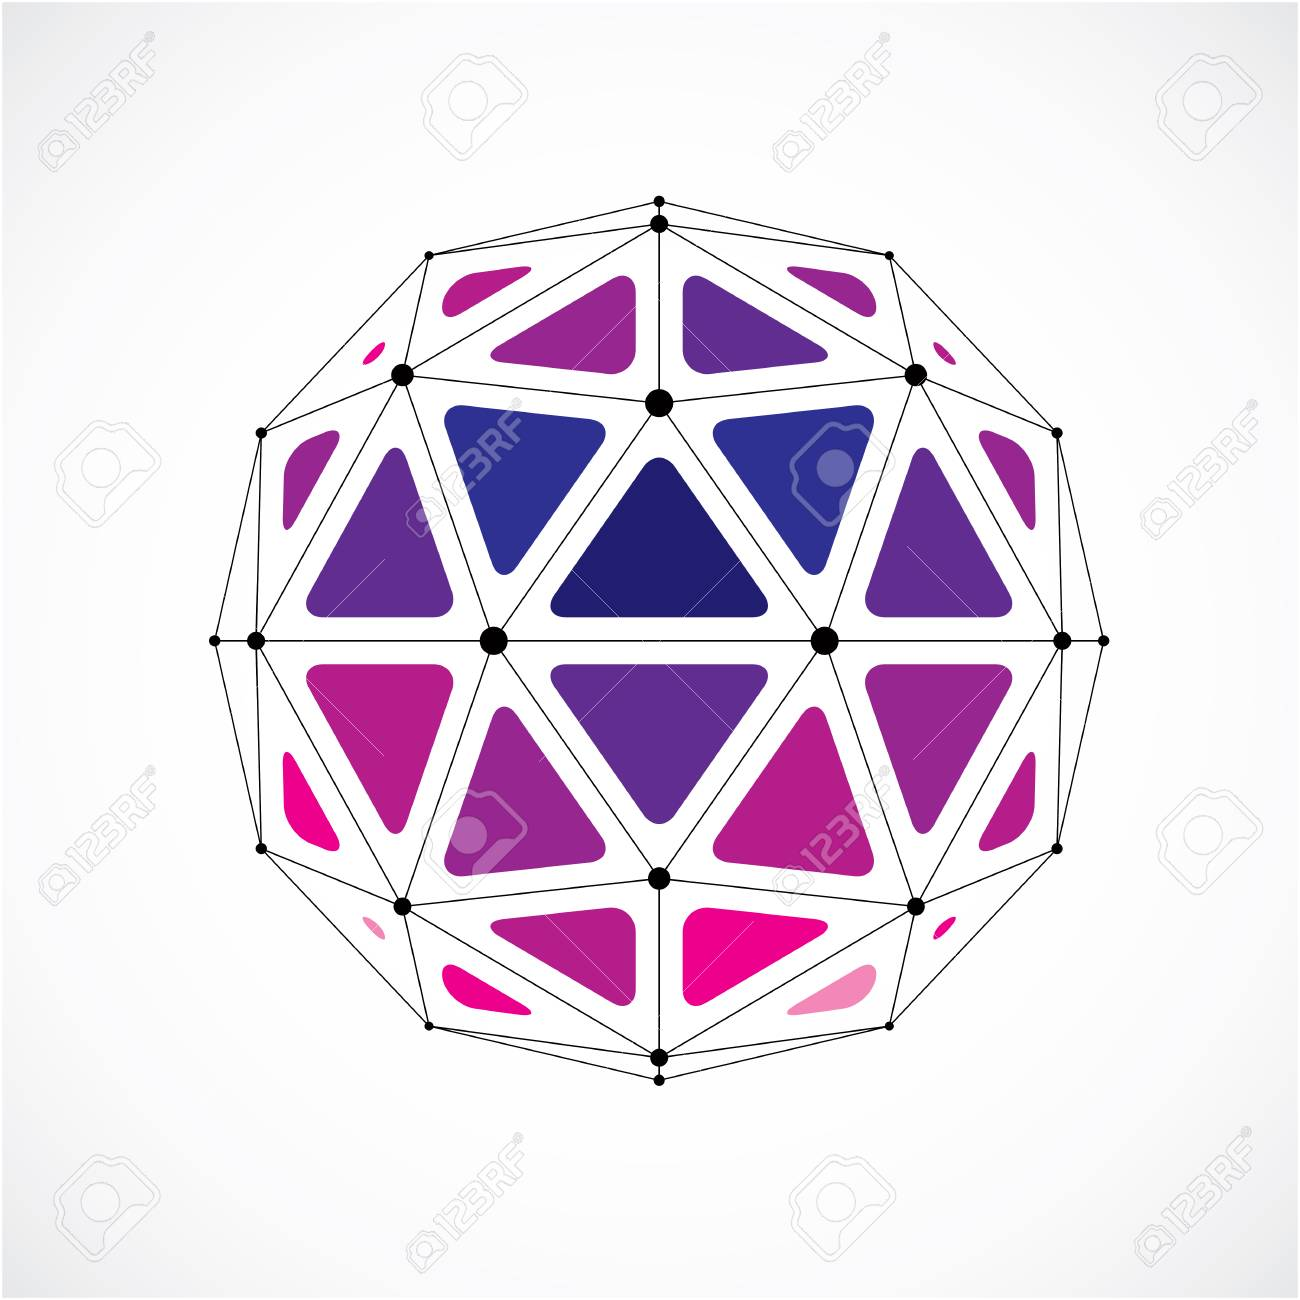 3d Vector Low Poly Spherical Object With Black Connected Lines ...